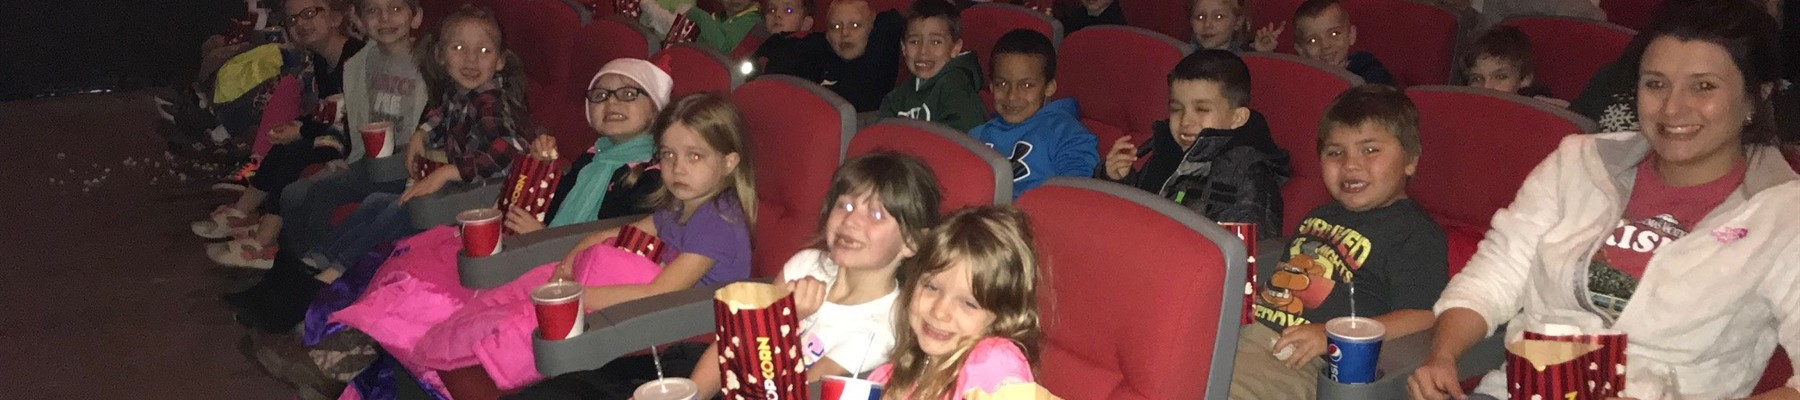 Plains Elementary Students on Field Trip to Movies 10